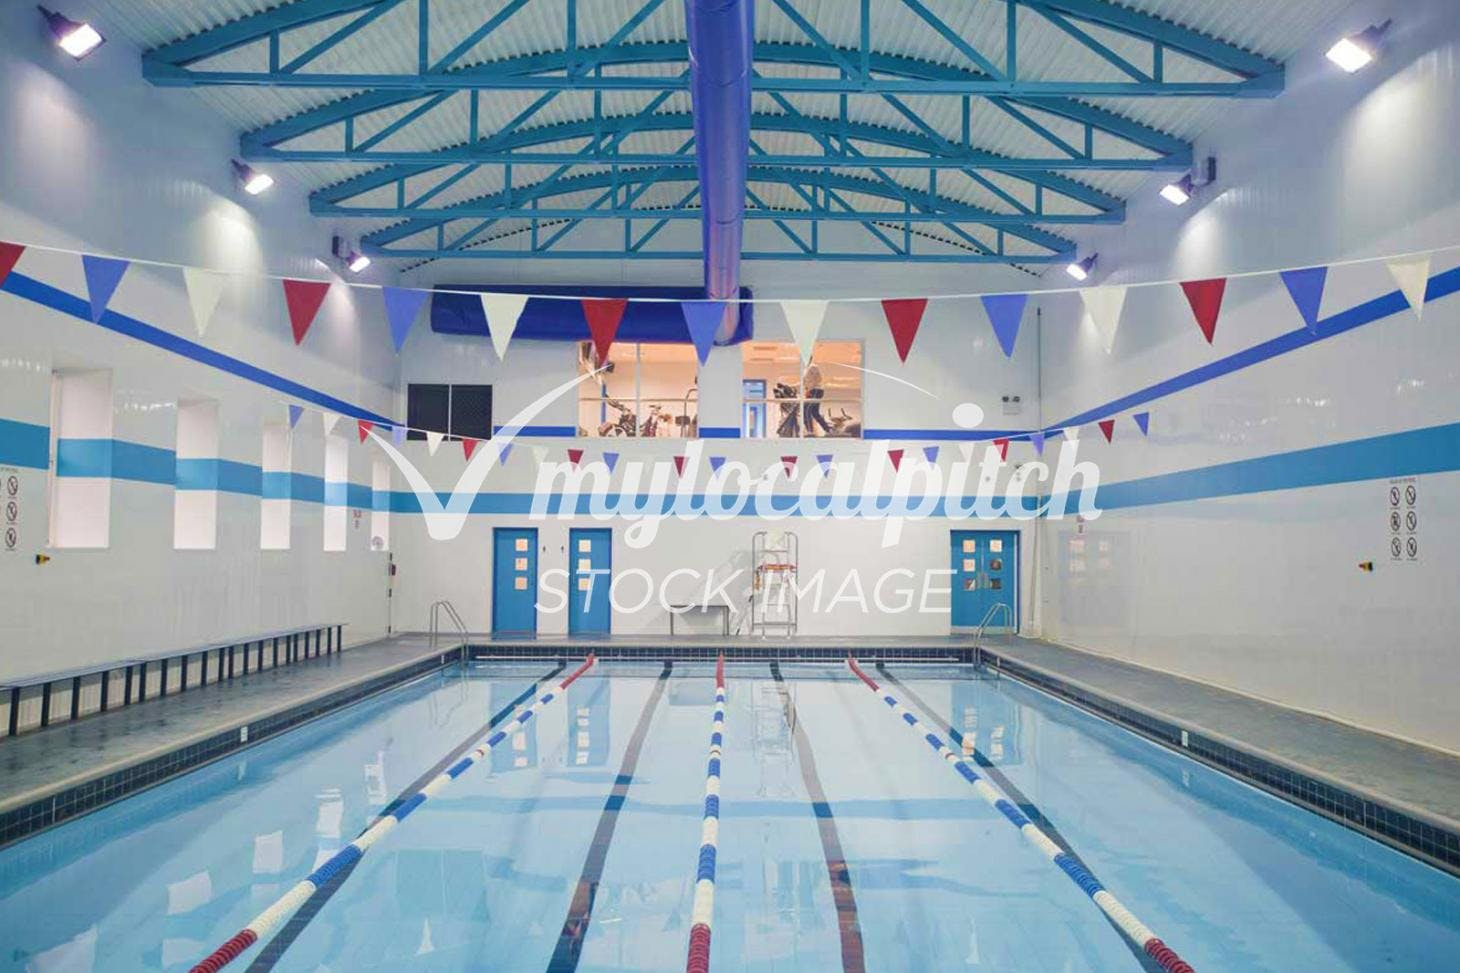 The King's Club Indoor swimming pool